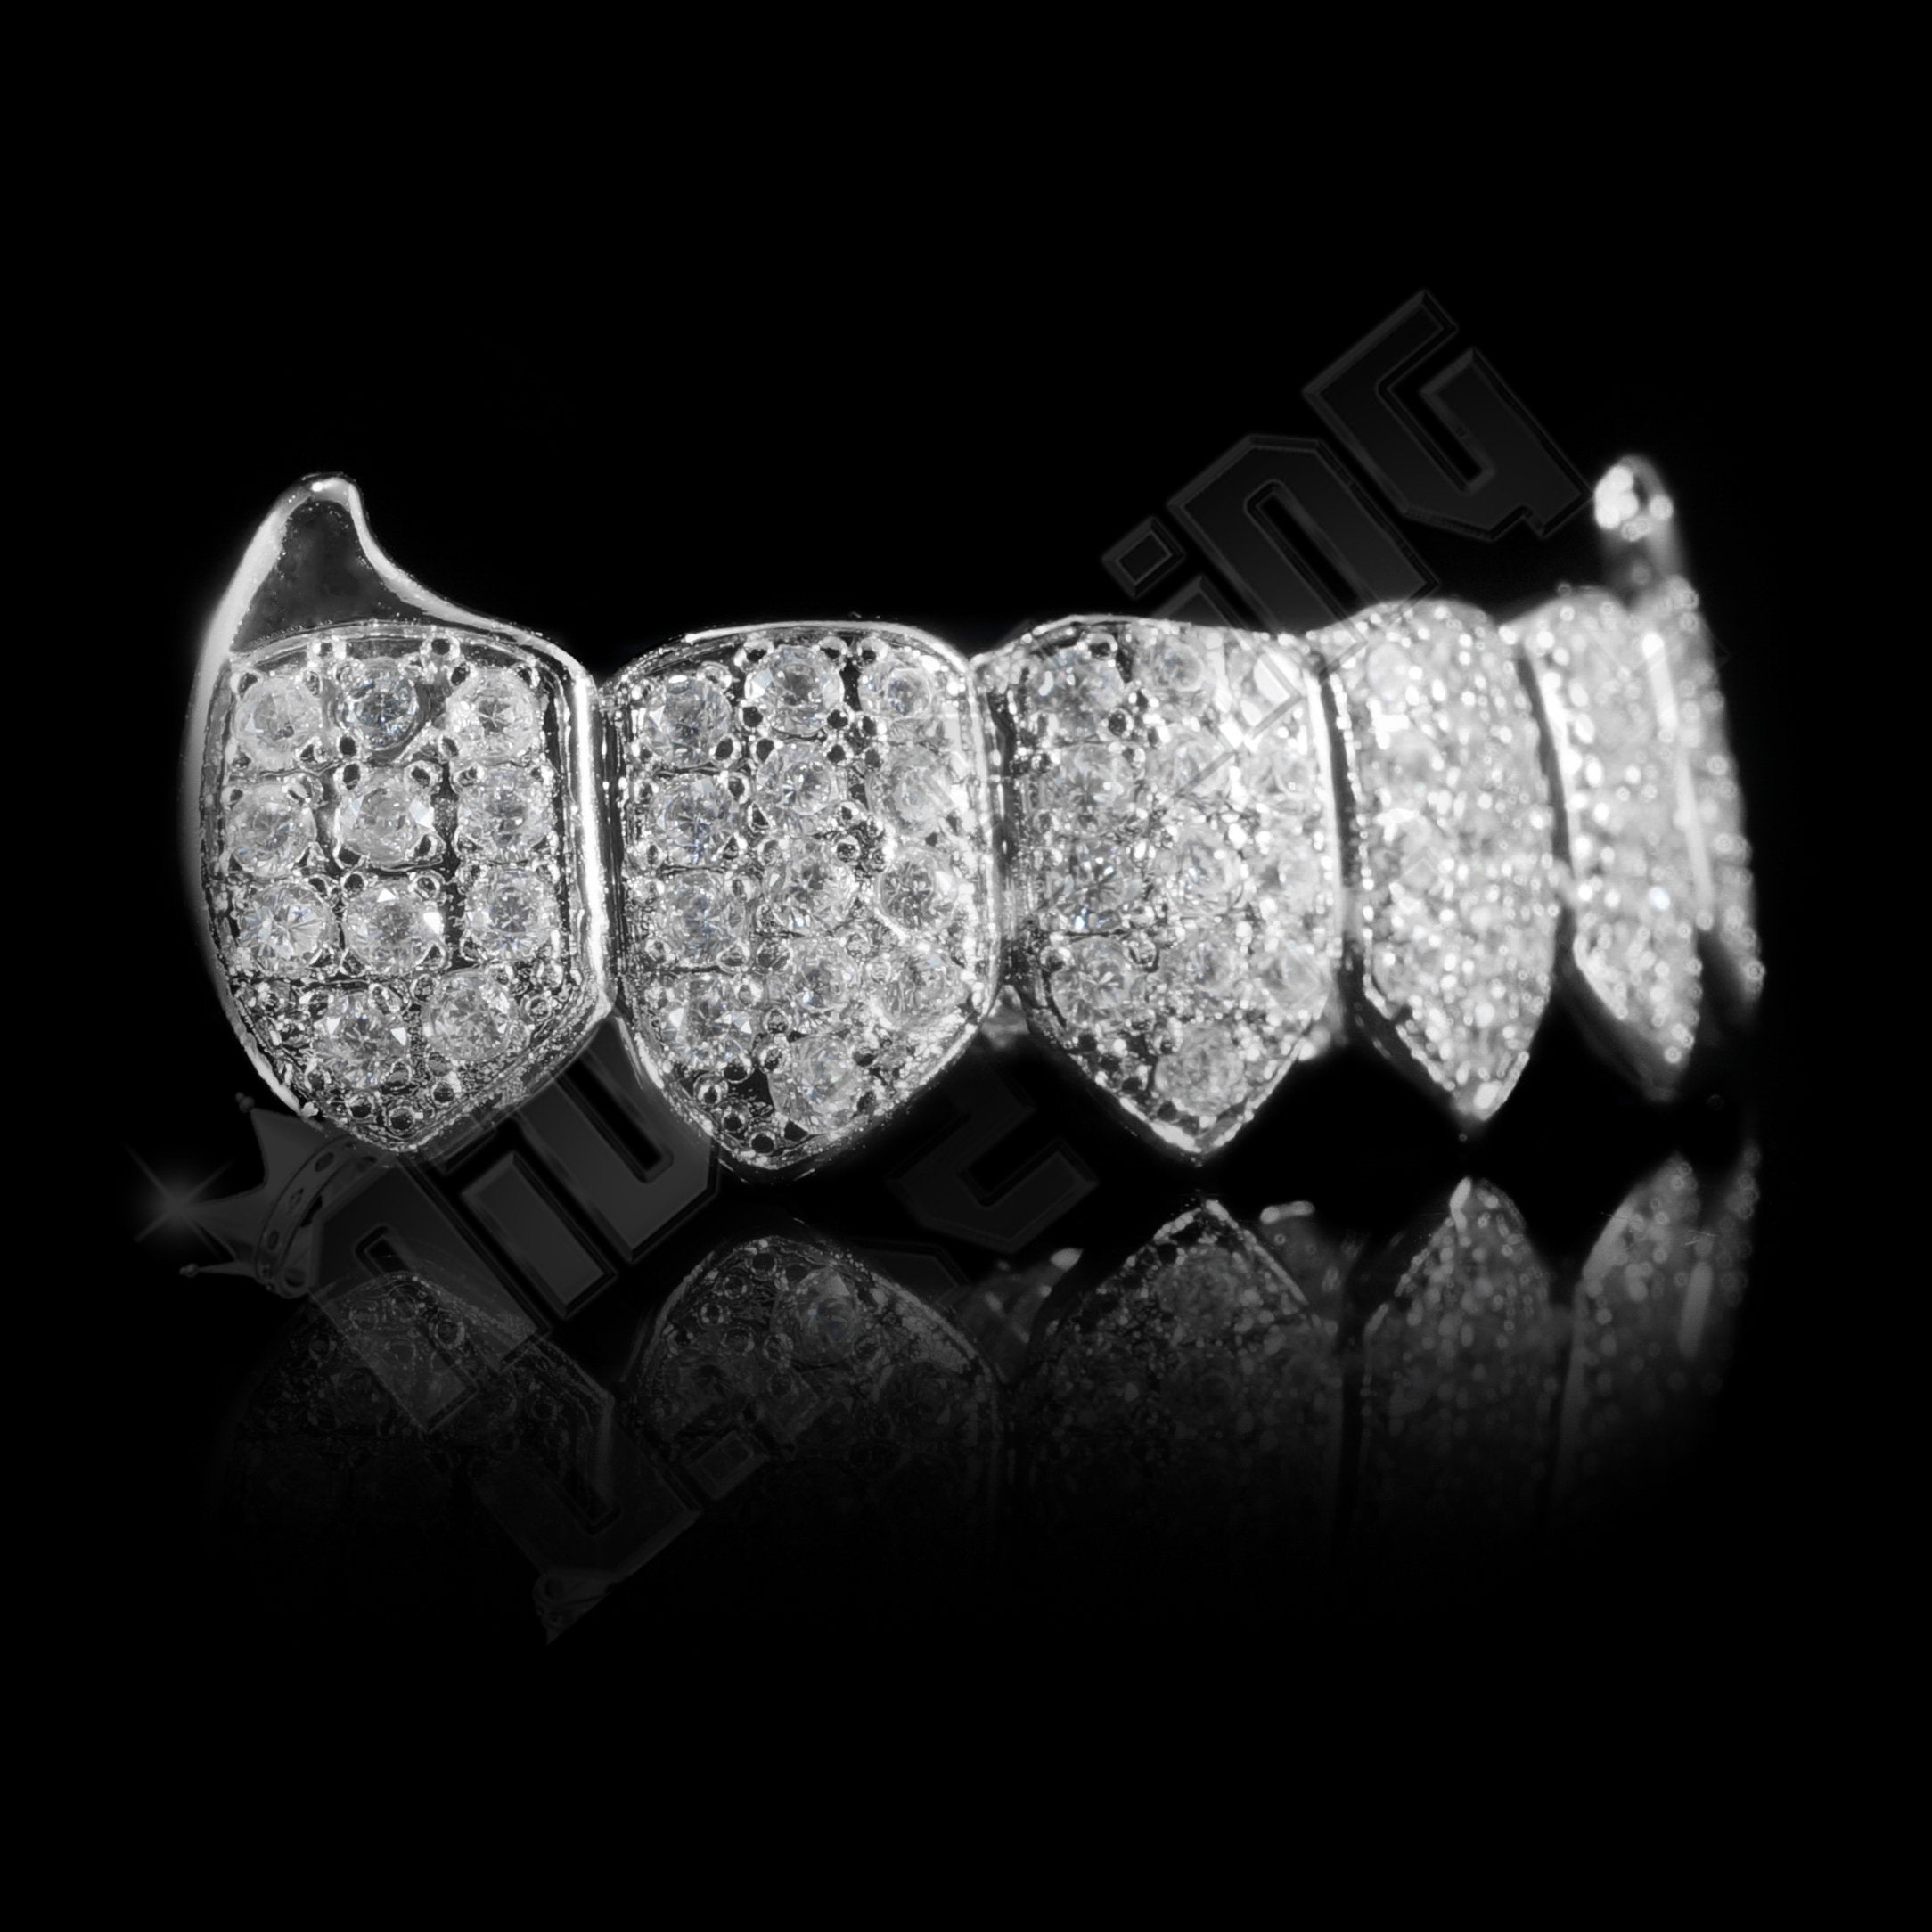 Affordable 18K WHite Gold Plated Fang CZ Cluster Top Bottom Hip Hop Grillz - Bottom Side Grill